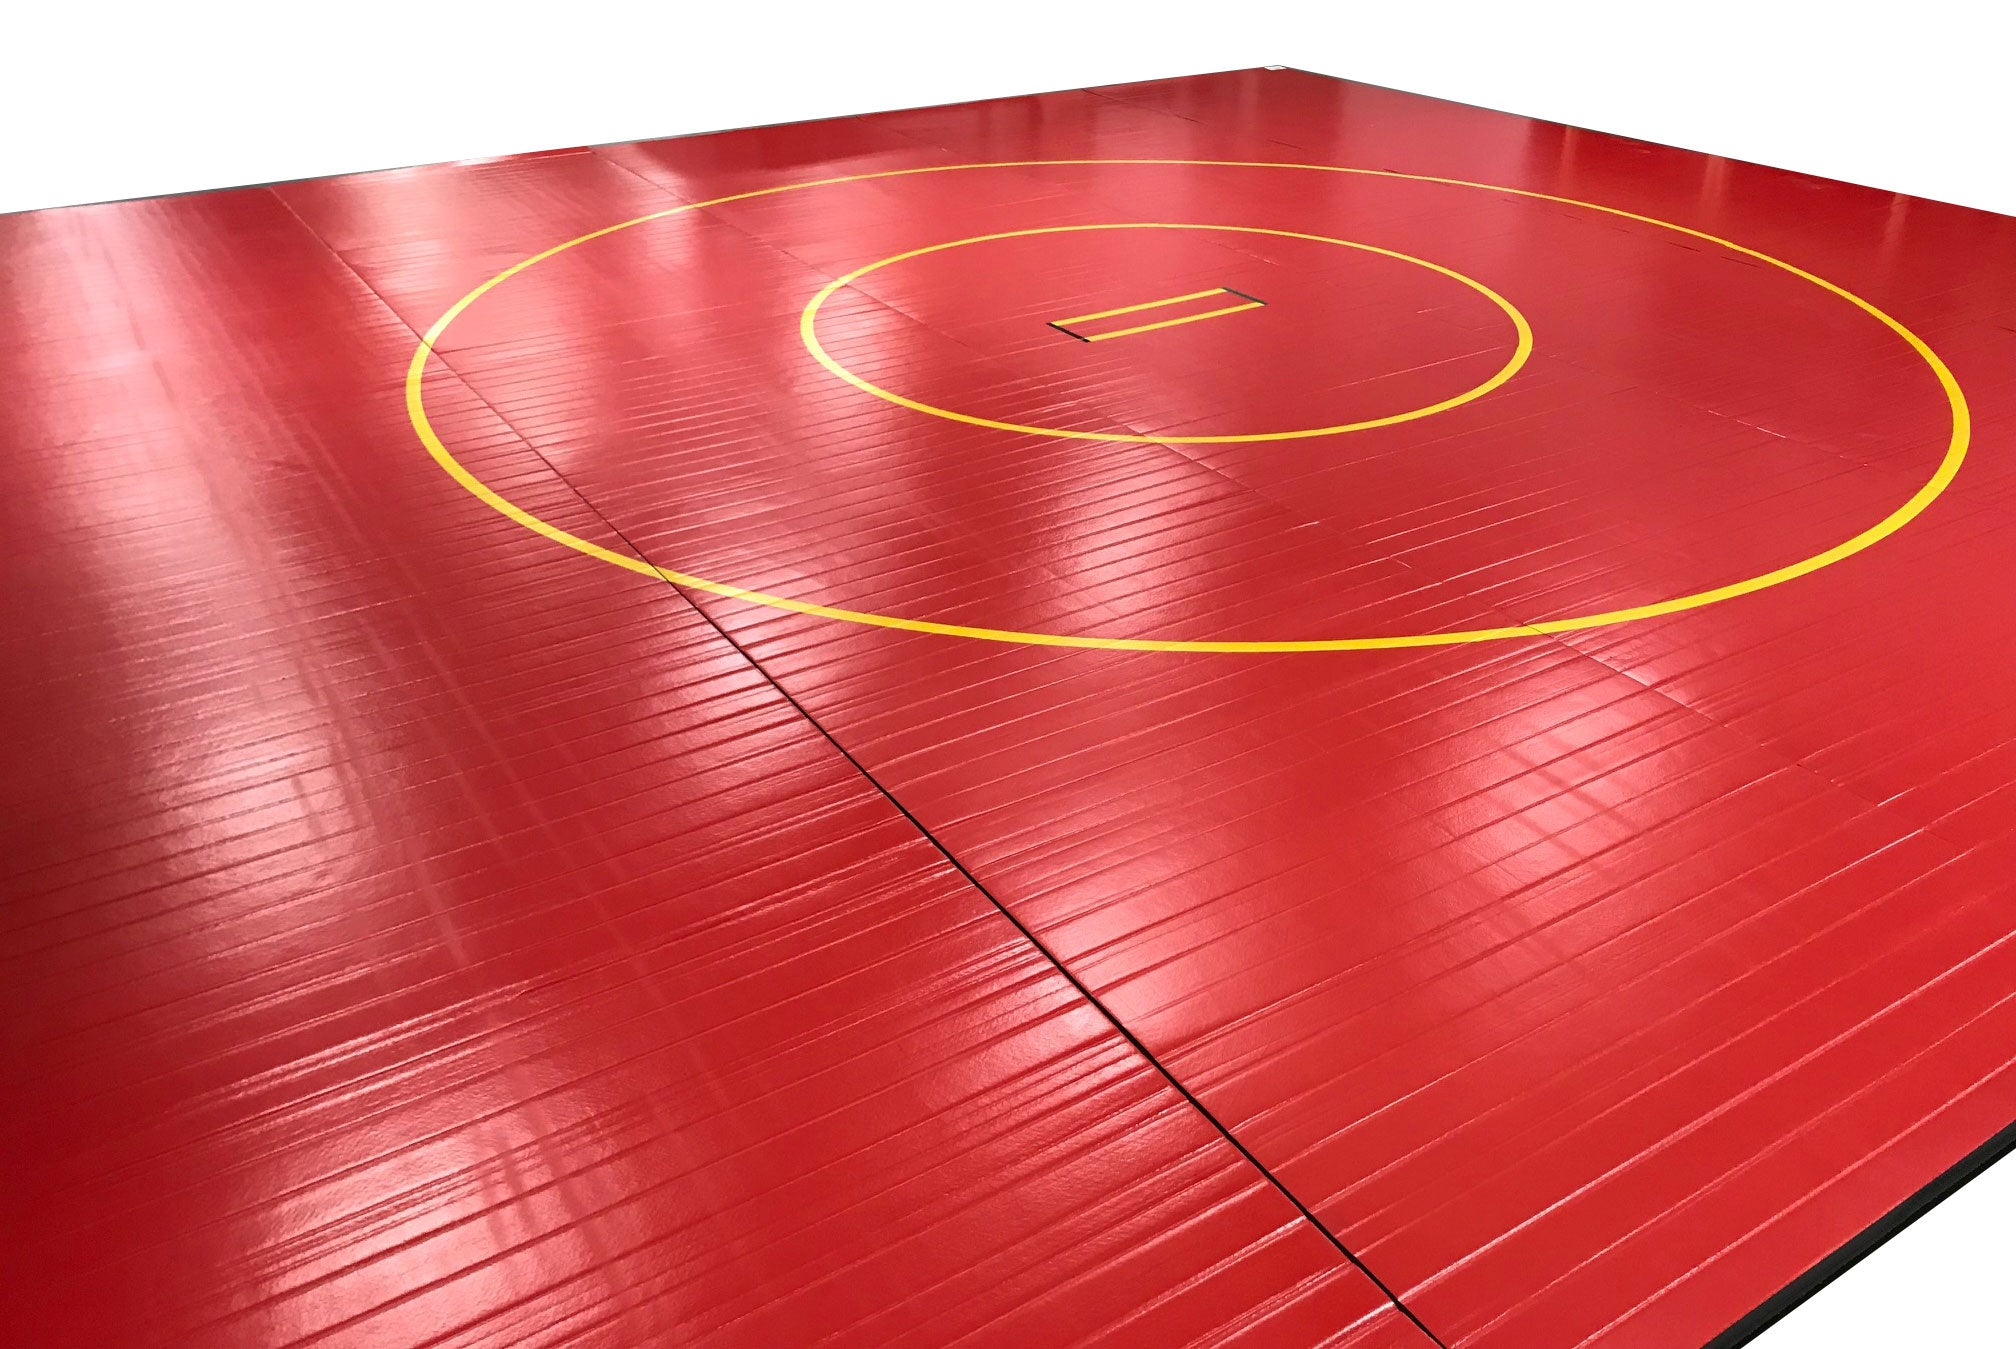 sale roll martial wrestling mat dick s grey is for mats mma dollamur noimagefound flexi goods charcoal p sporting arts